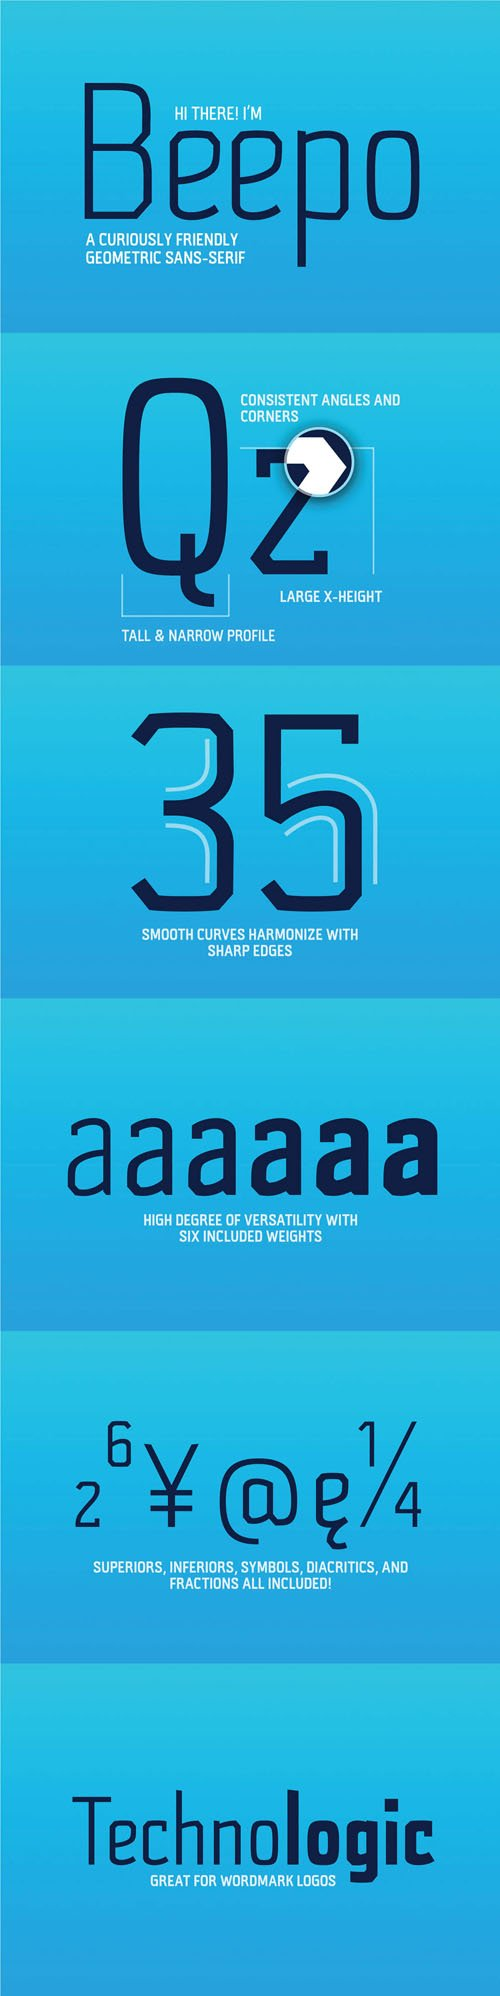 Beepo - A Curiously Friendly - Geometric Sans Serif Font (6-Weights)